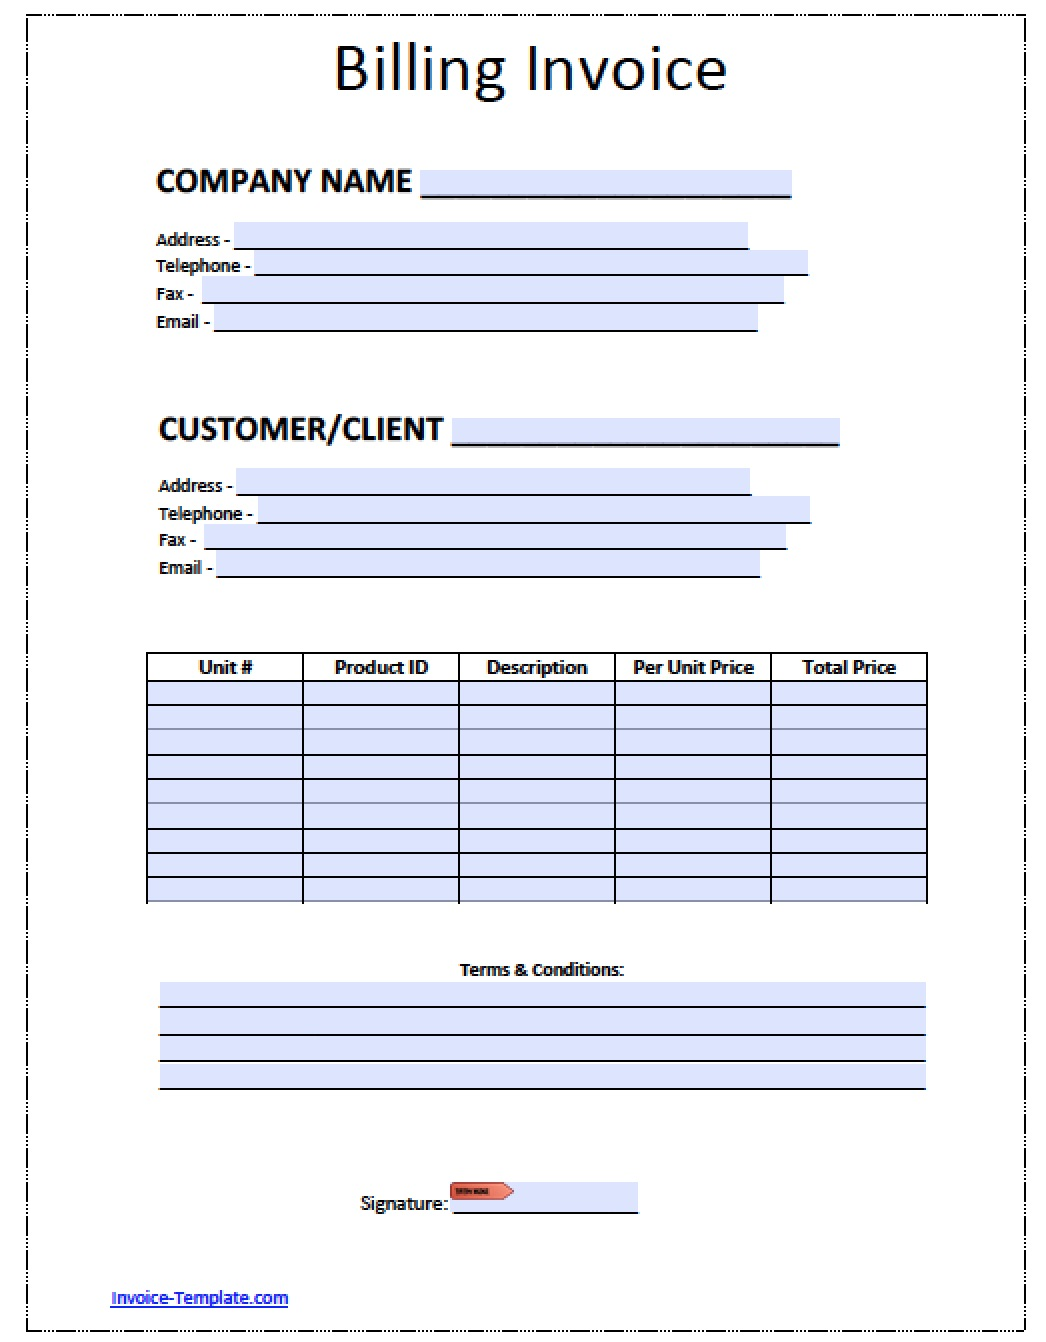 Amatospizzaus  Surprising Free Billing Invoice Template  Excel  Pdf  Word Doc With Engaging Billinginvoicetemplatewordpdf With Delightful Template Of Receipt Also Receipt Print Out In Addition Receipts Scanner App And Equipment Interchange Receipt As Well As Make A Receipt In Word Additionally Chinese Receipt From Invoicetemplatecom With Amatospizzaus  Engaging Free Billing Invoice Template  Excel  Pdf  Word Doc With Delightful Billinginvoicetemplatewordpdf And Surprising Template Of Receipt Also Receipt Print Out In Addition Receipts Scanner App From Invoicetemplatecom